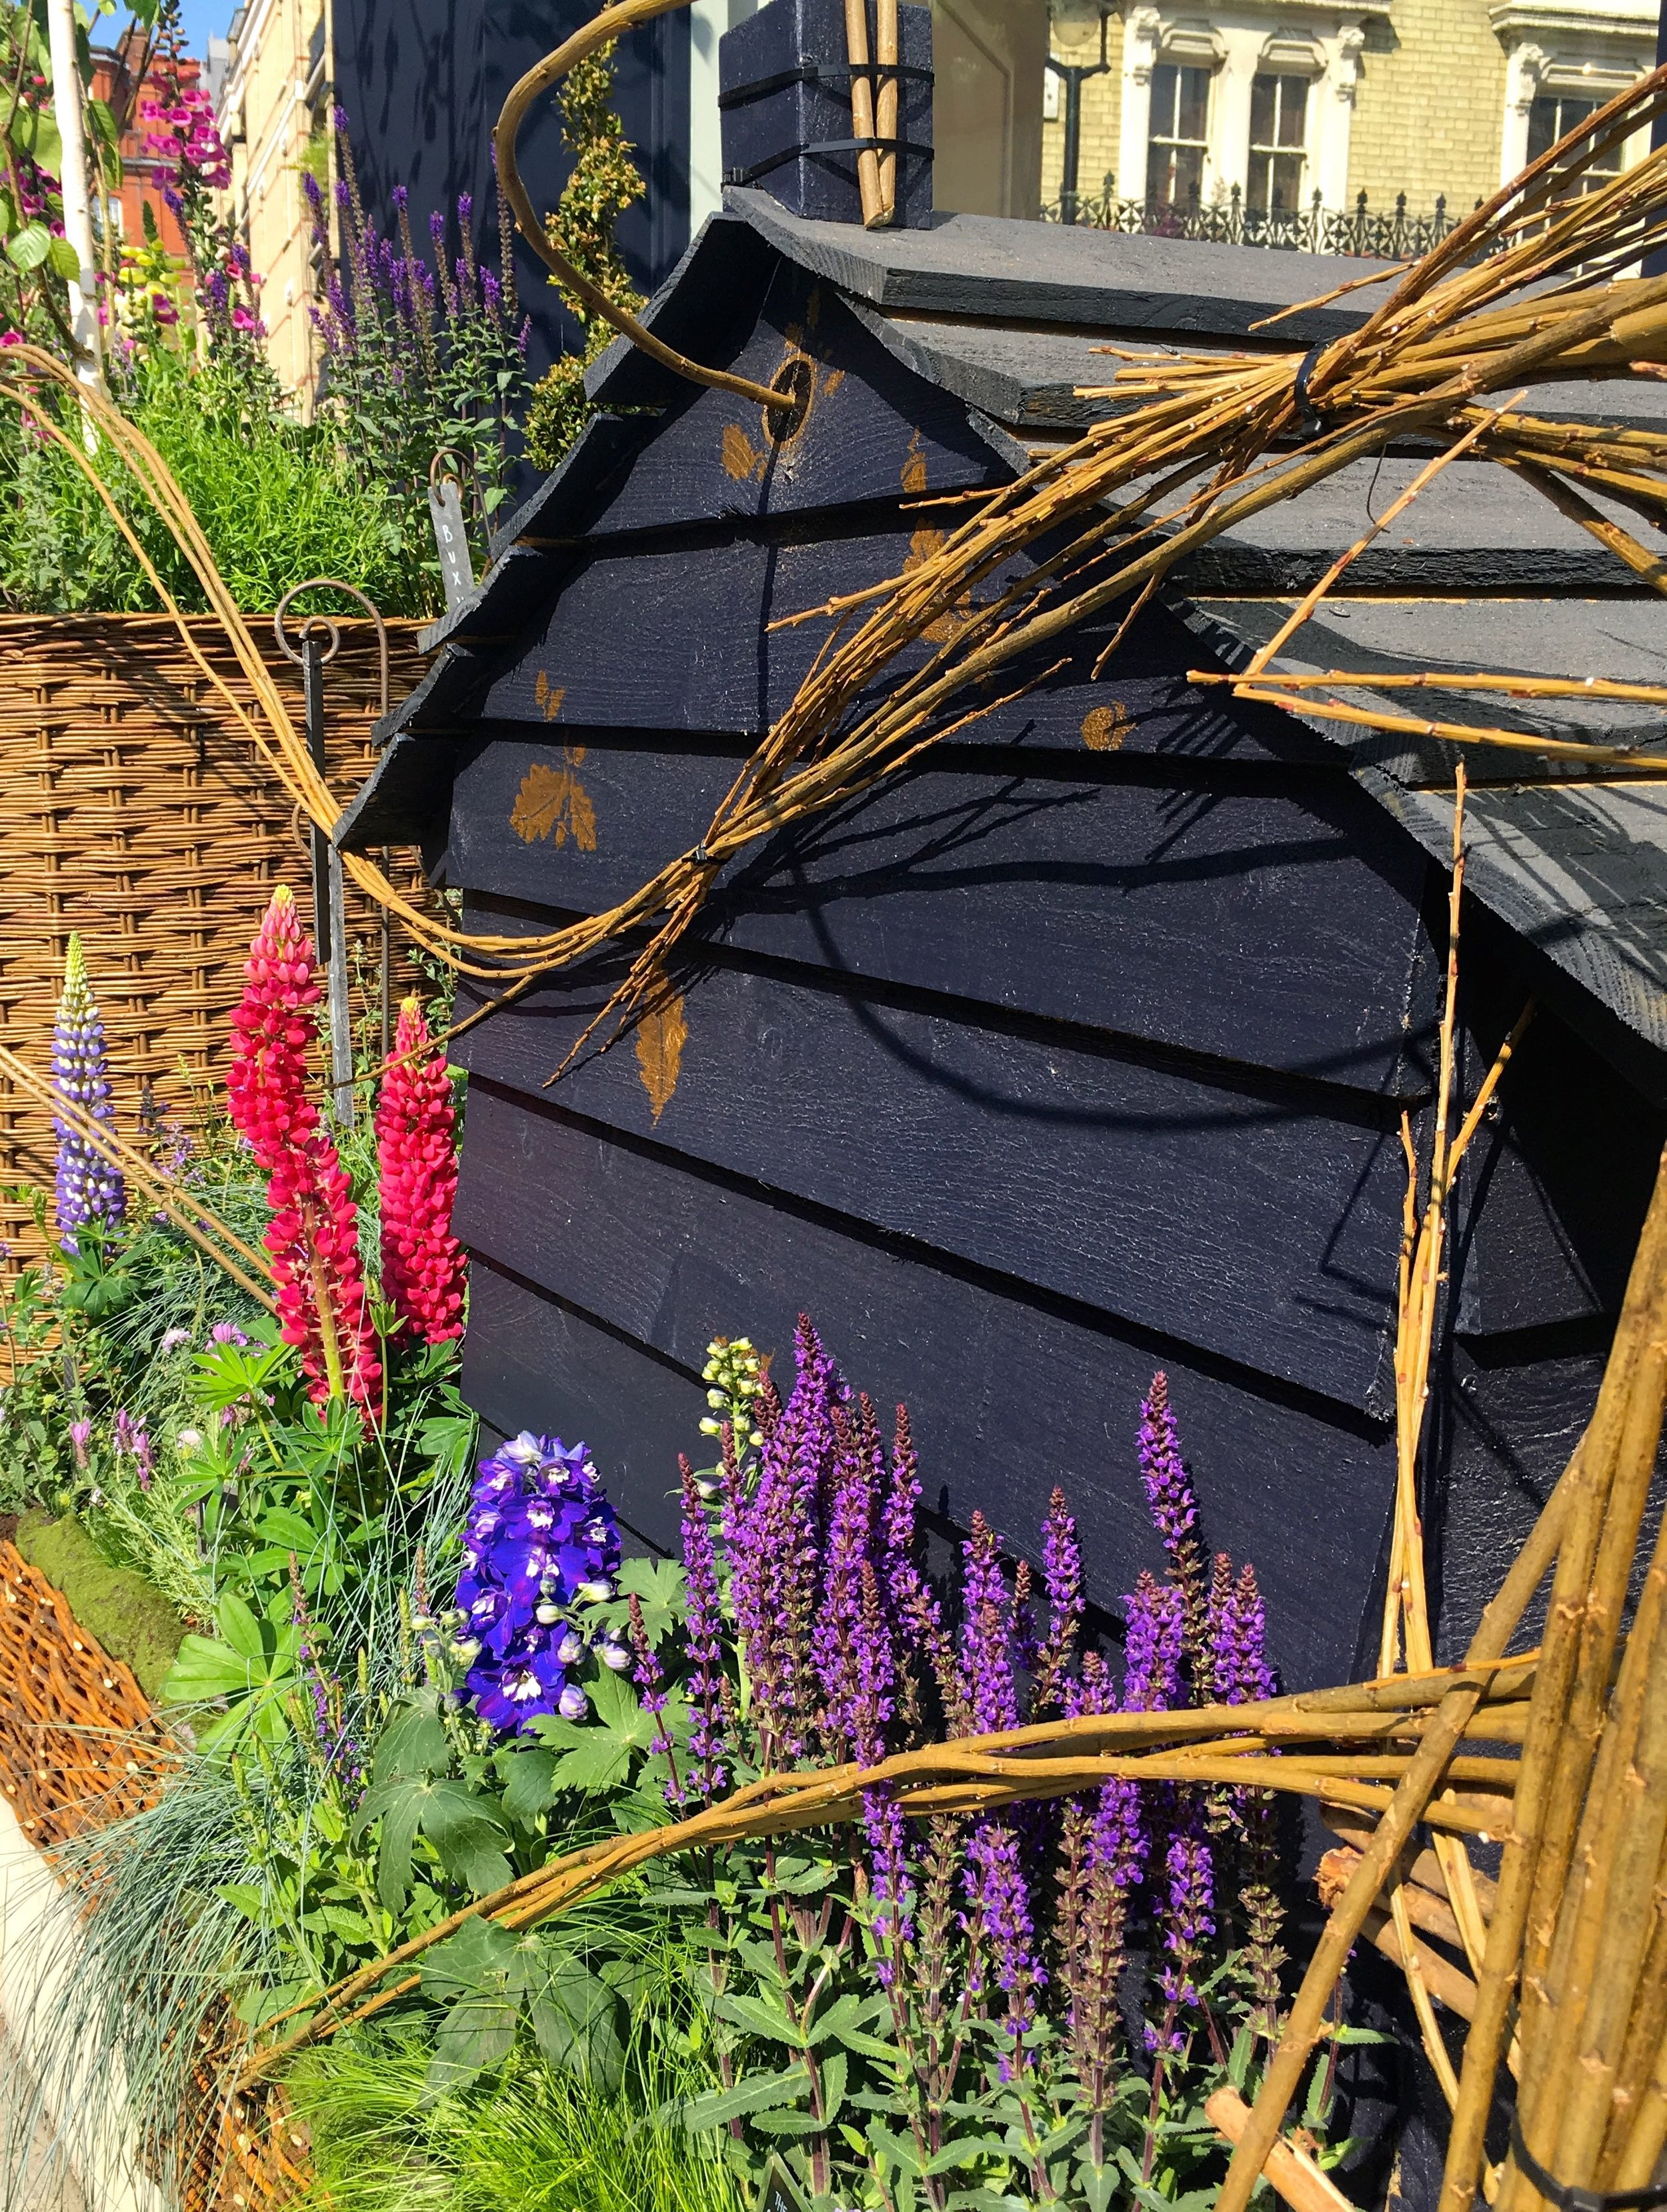 Plants for bees, and a beehive too